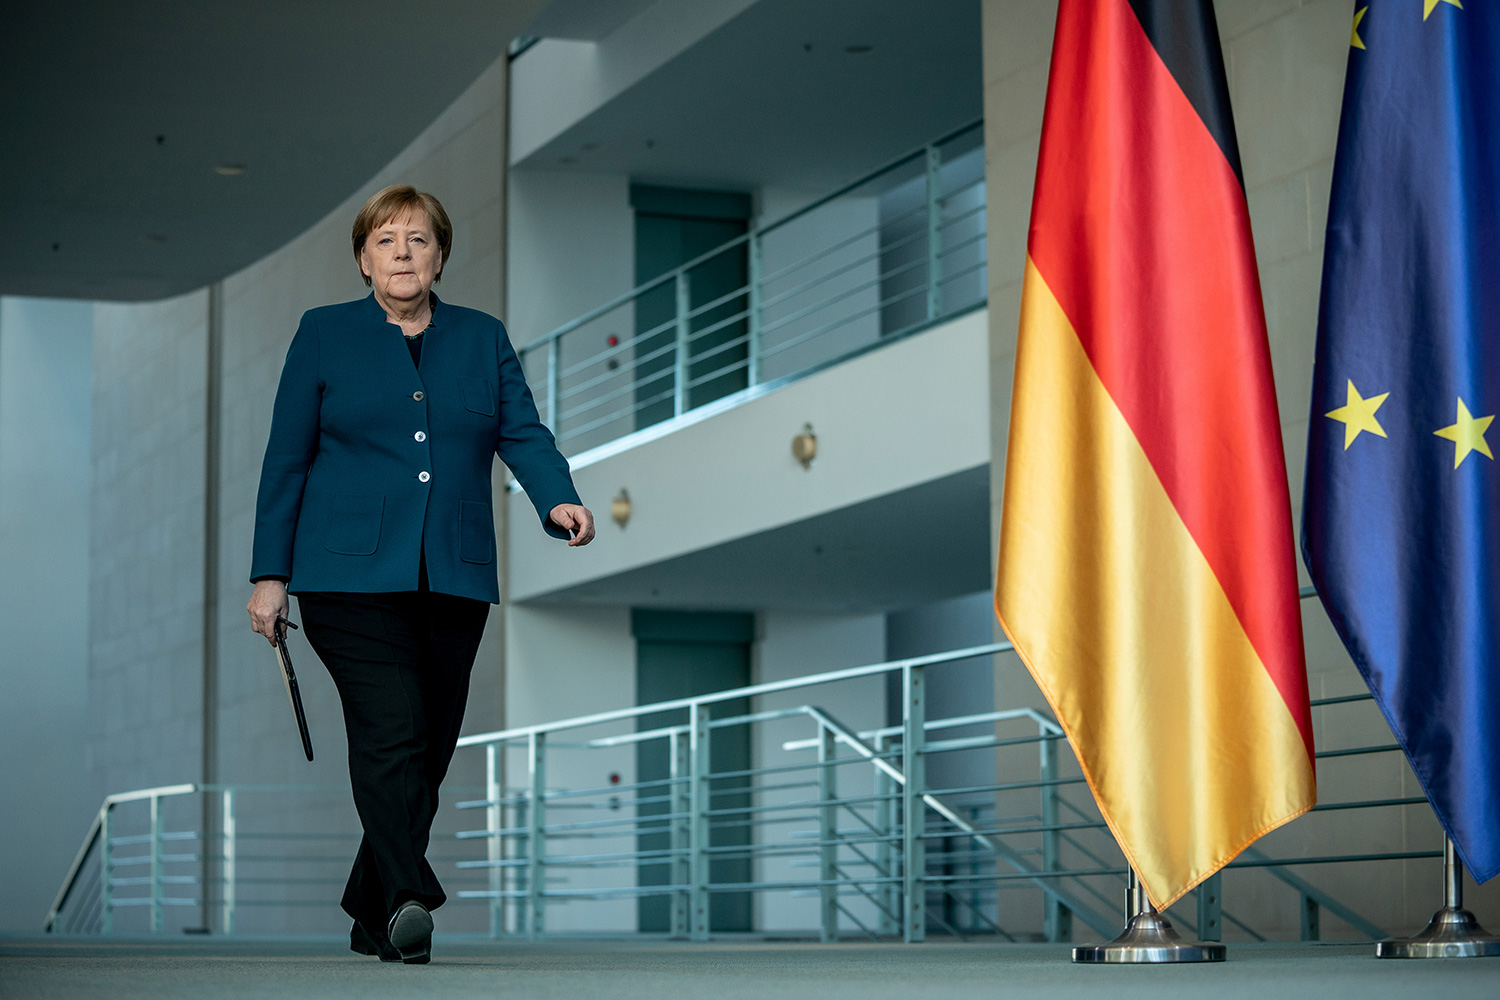 The photo shows the German leader walking through a building interior next to a German flag.